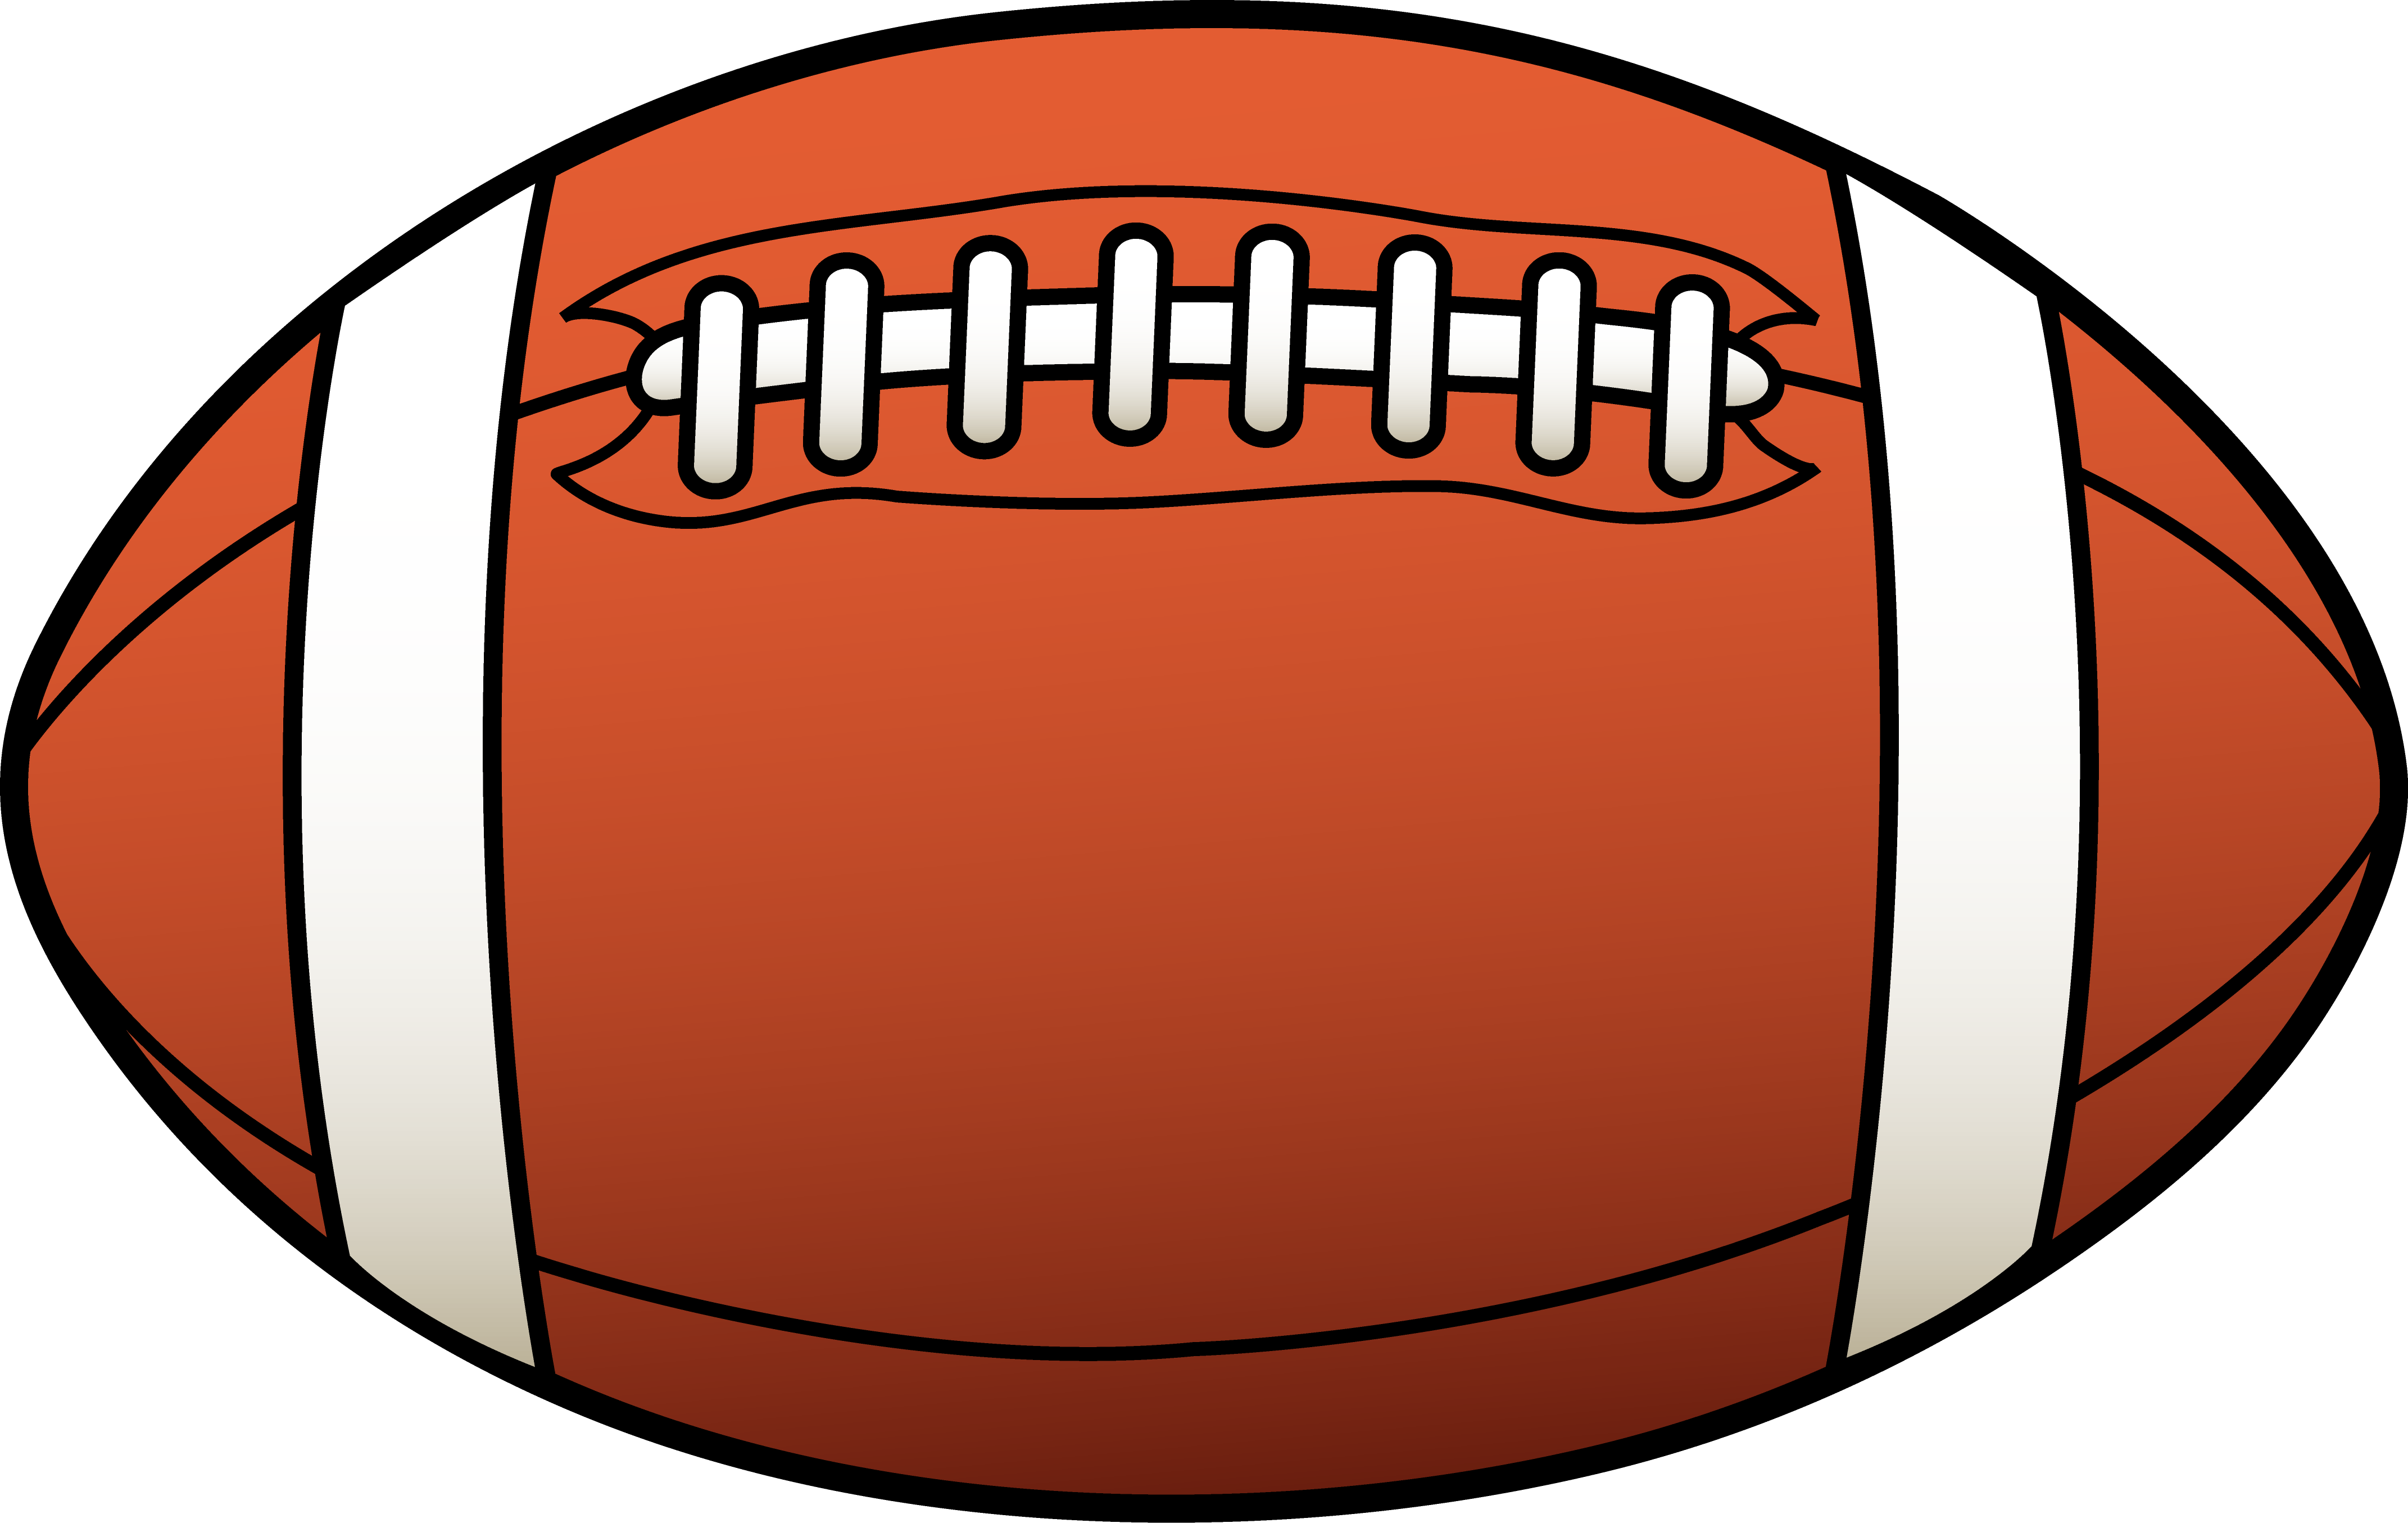 American sport png images. Clipart halloween football